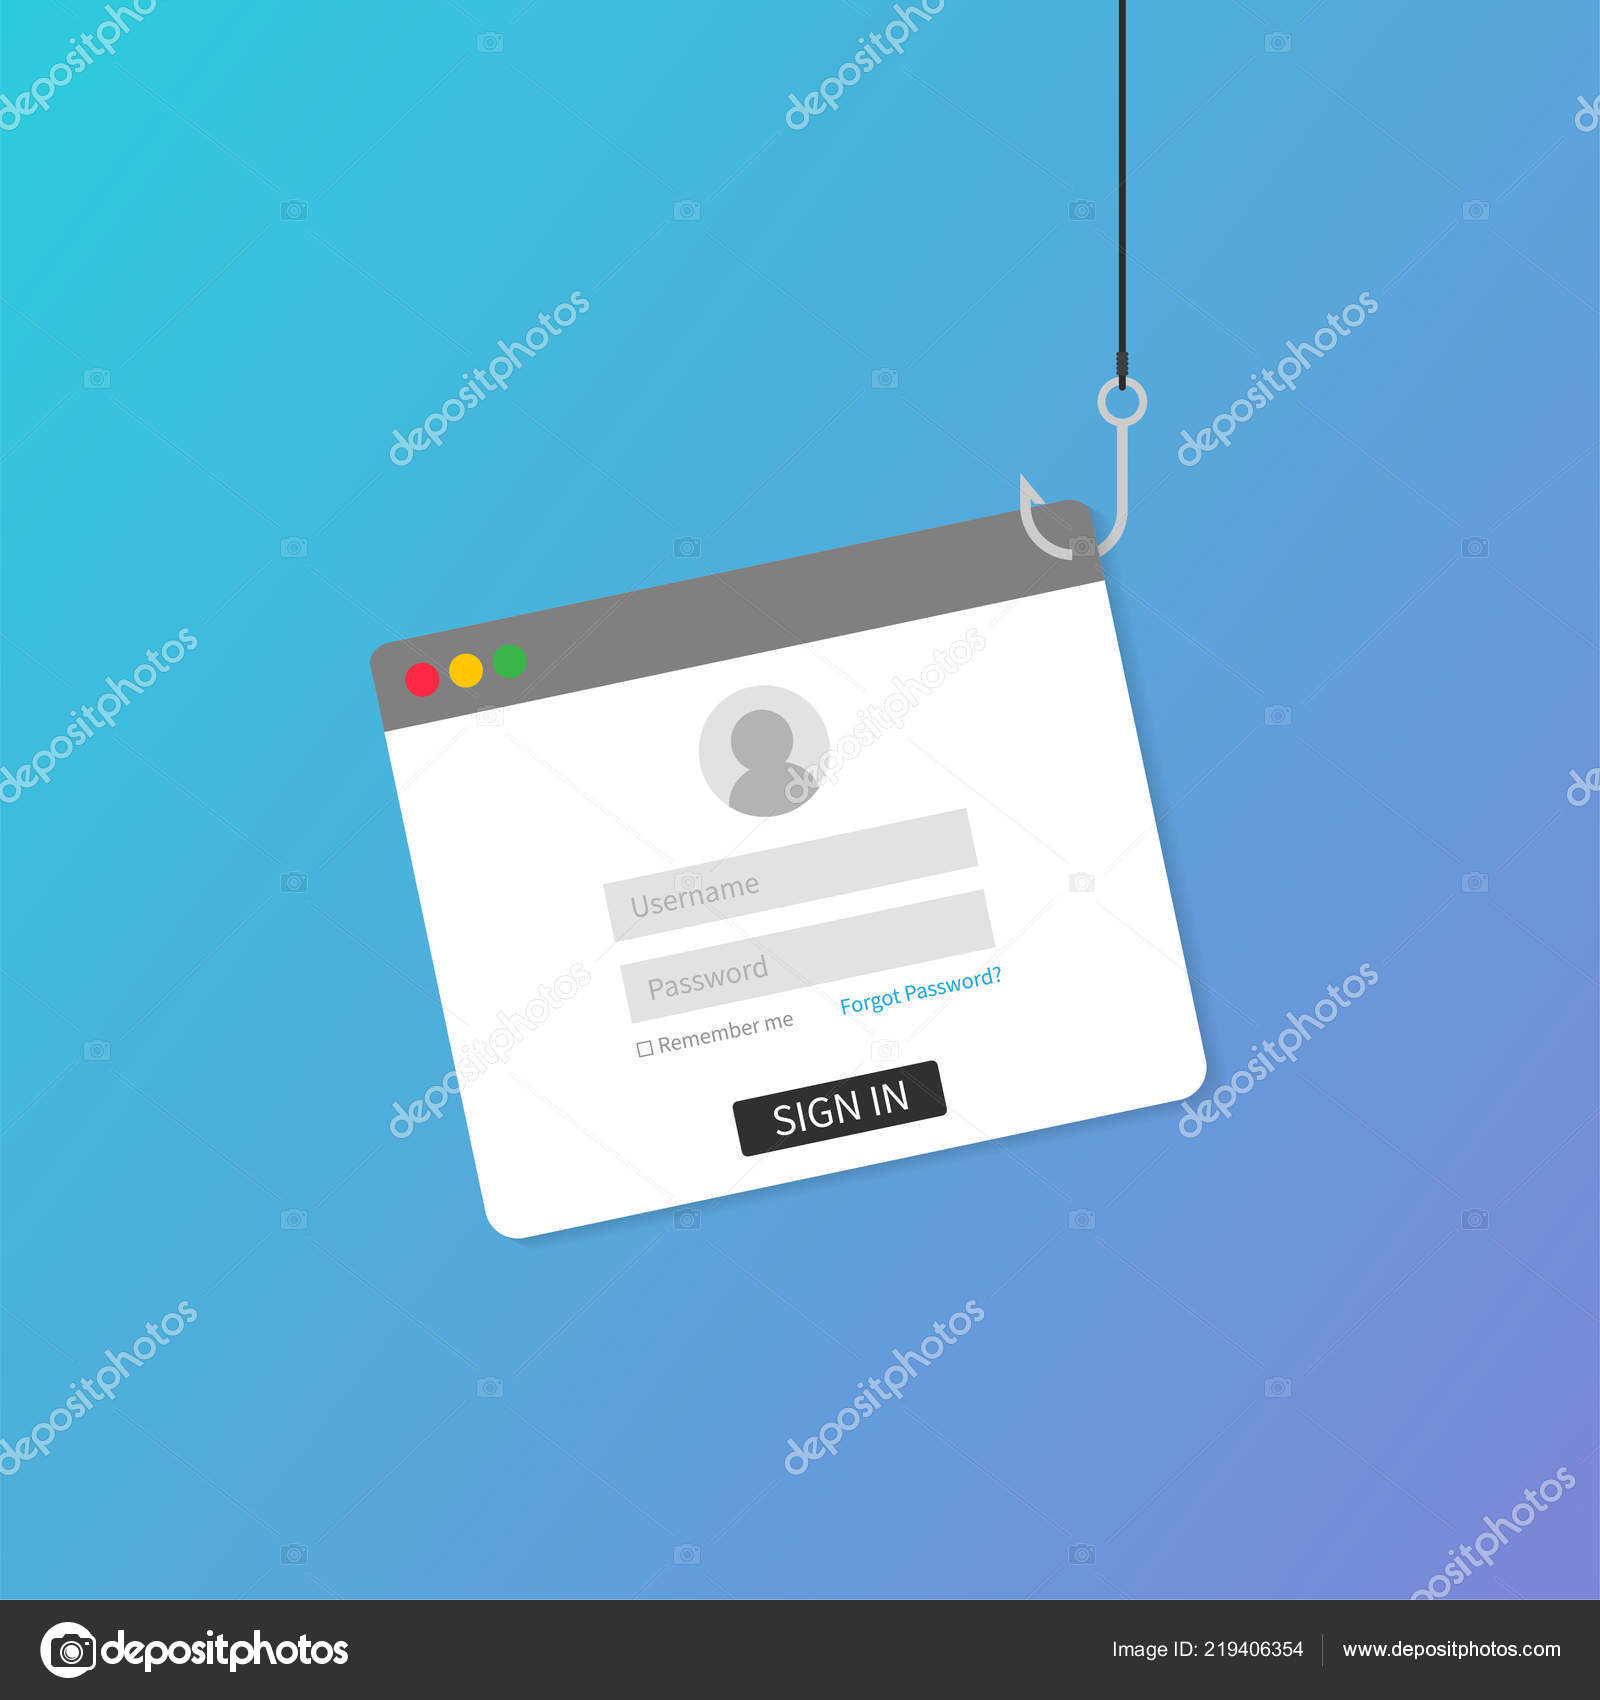 Laptop internet security concept  Internet phishing, hacked login